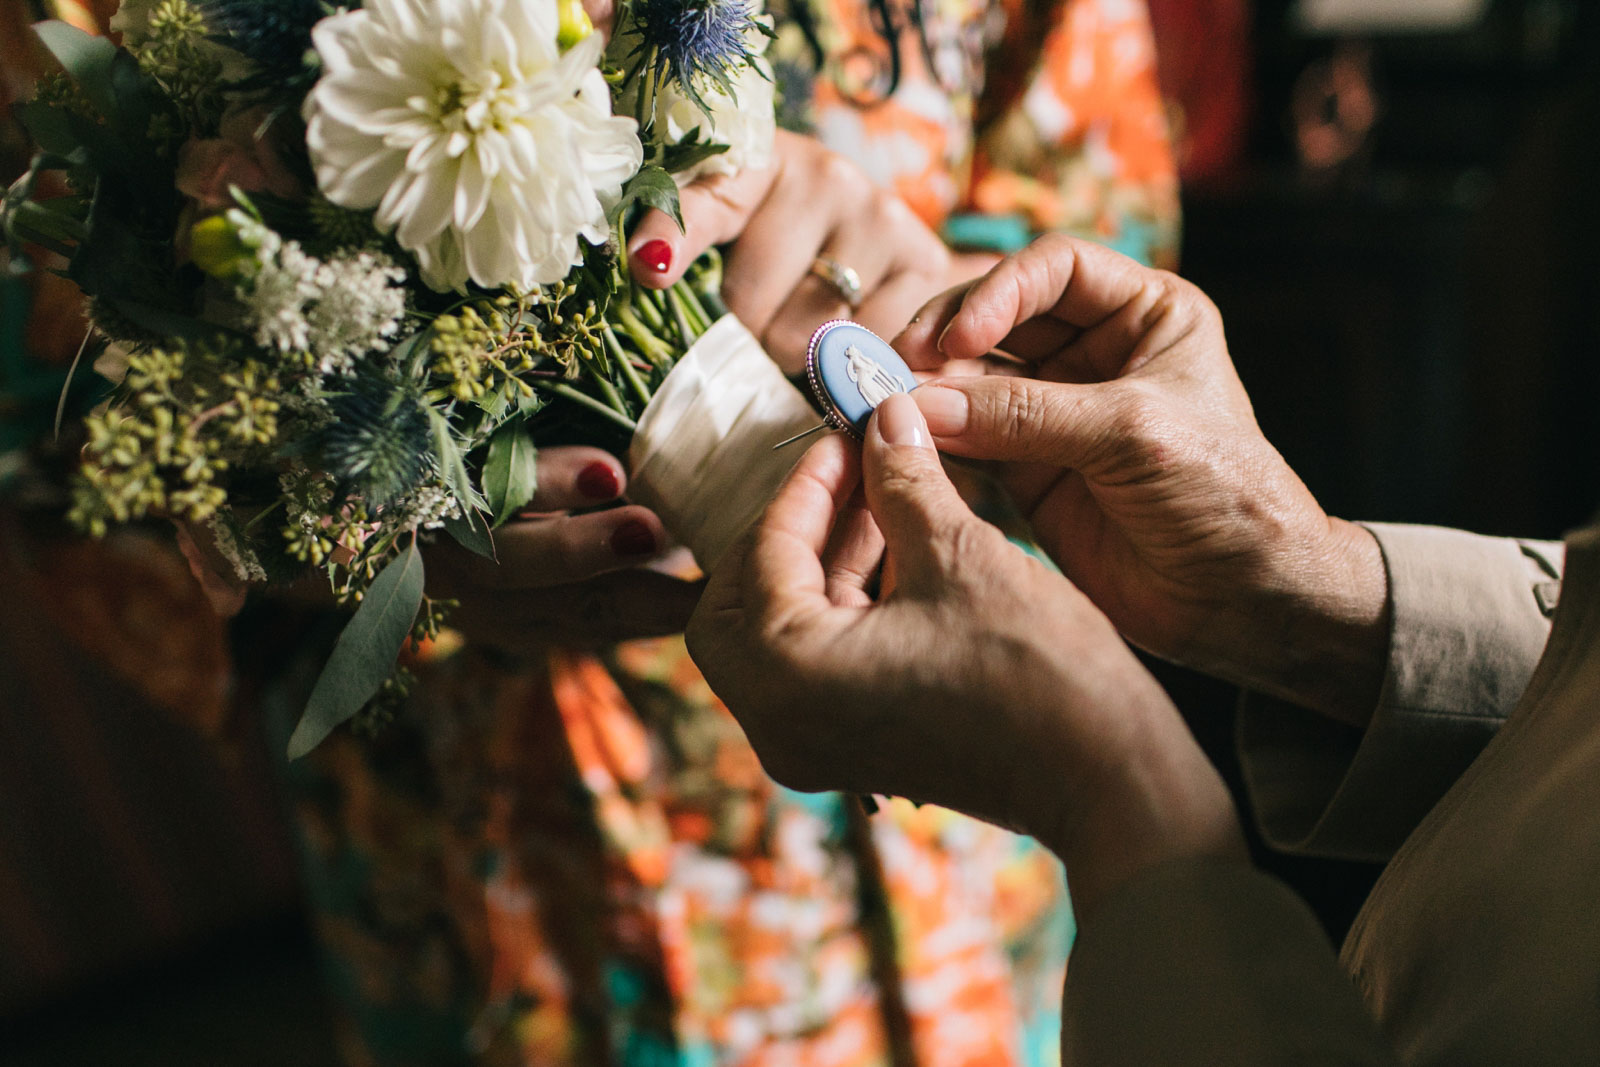 mother of the bride securing vintage wedgwood brooch heirloom onto bouquet as her